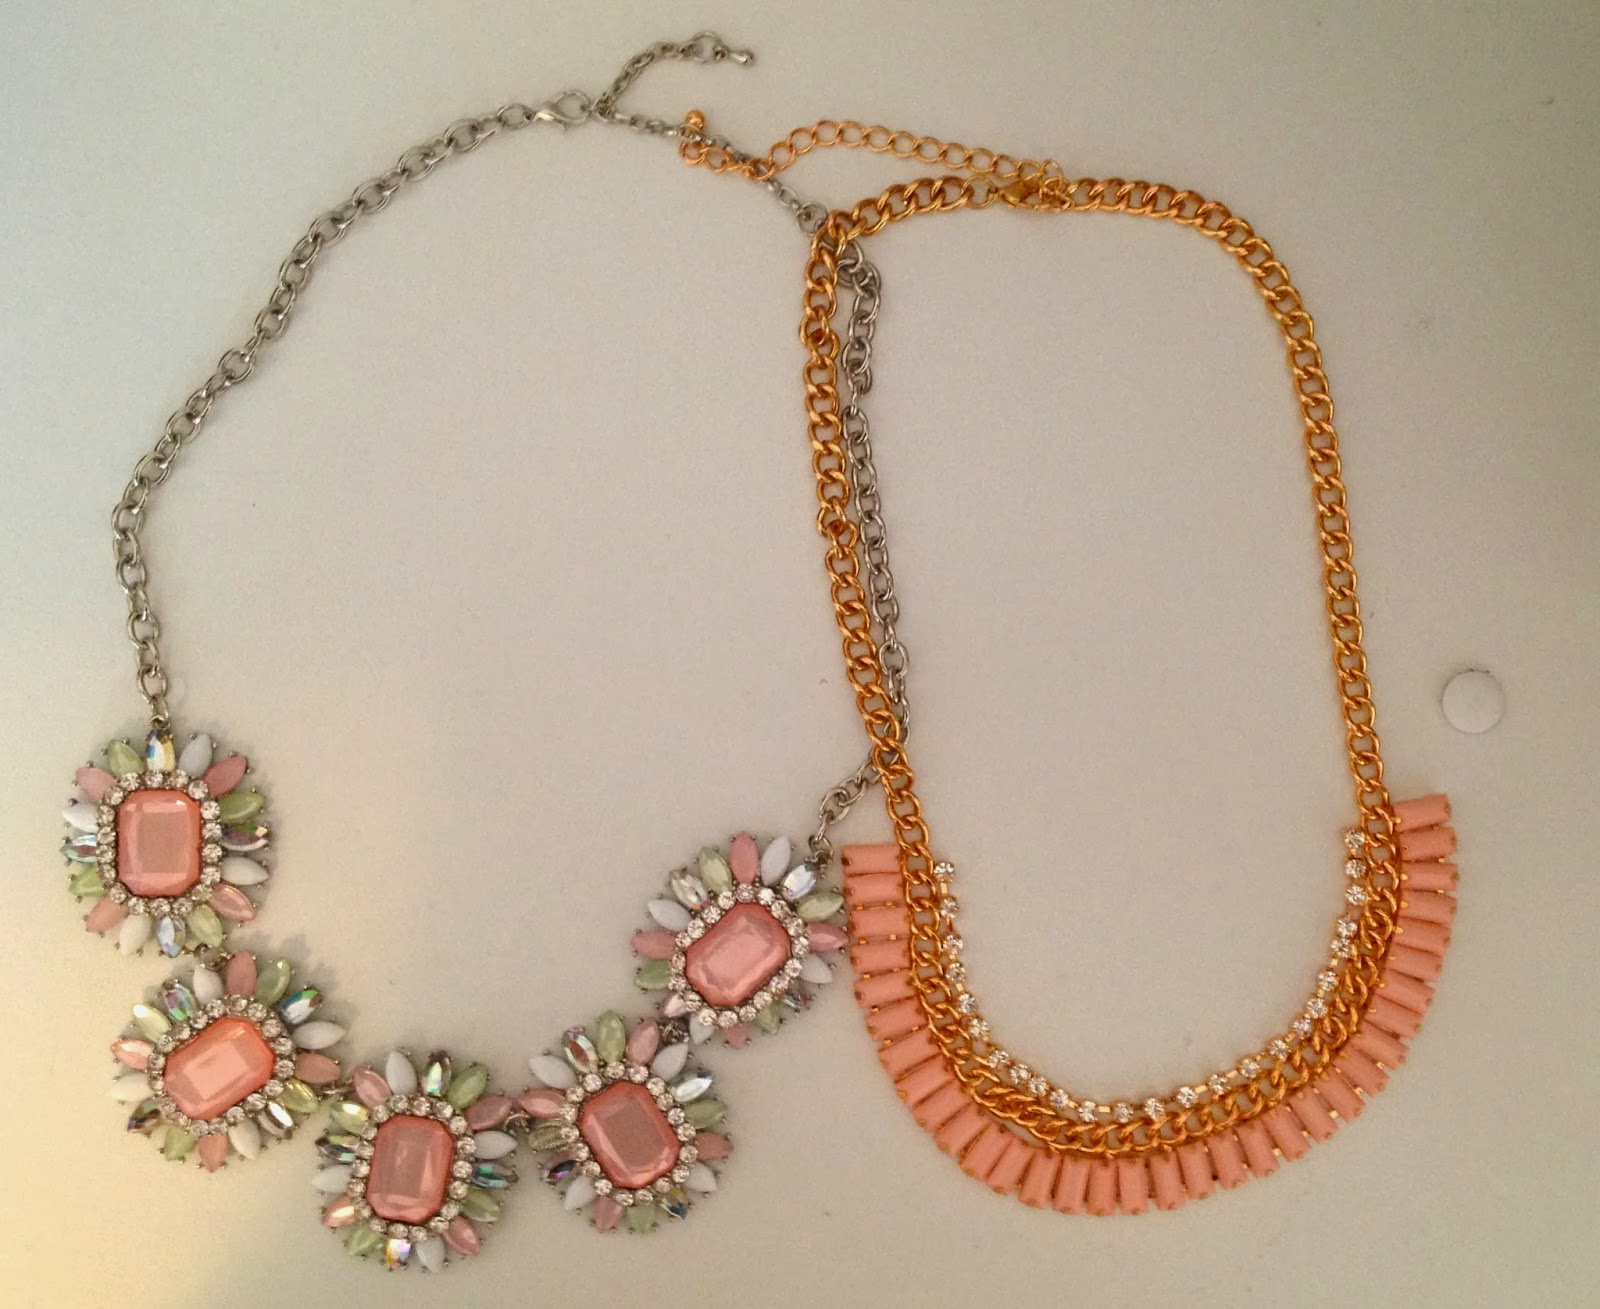 Statement necklace from Costa Blanca